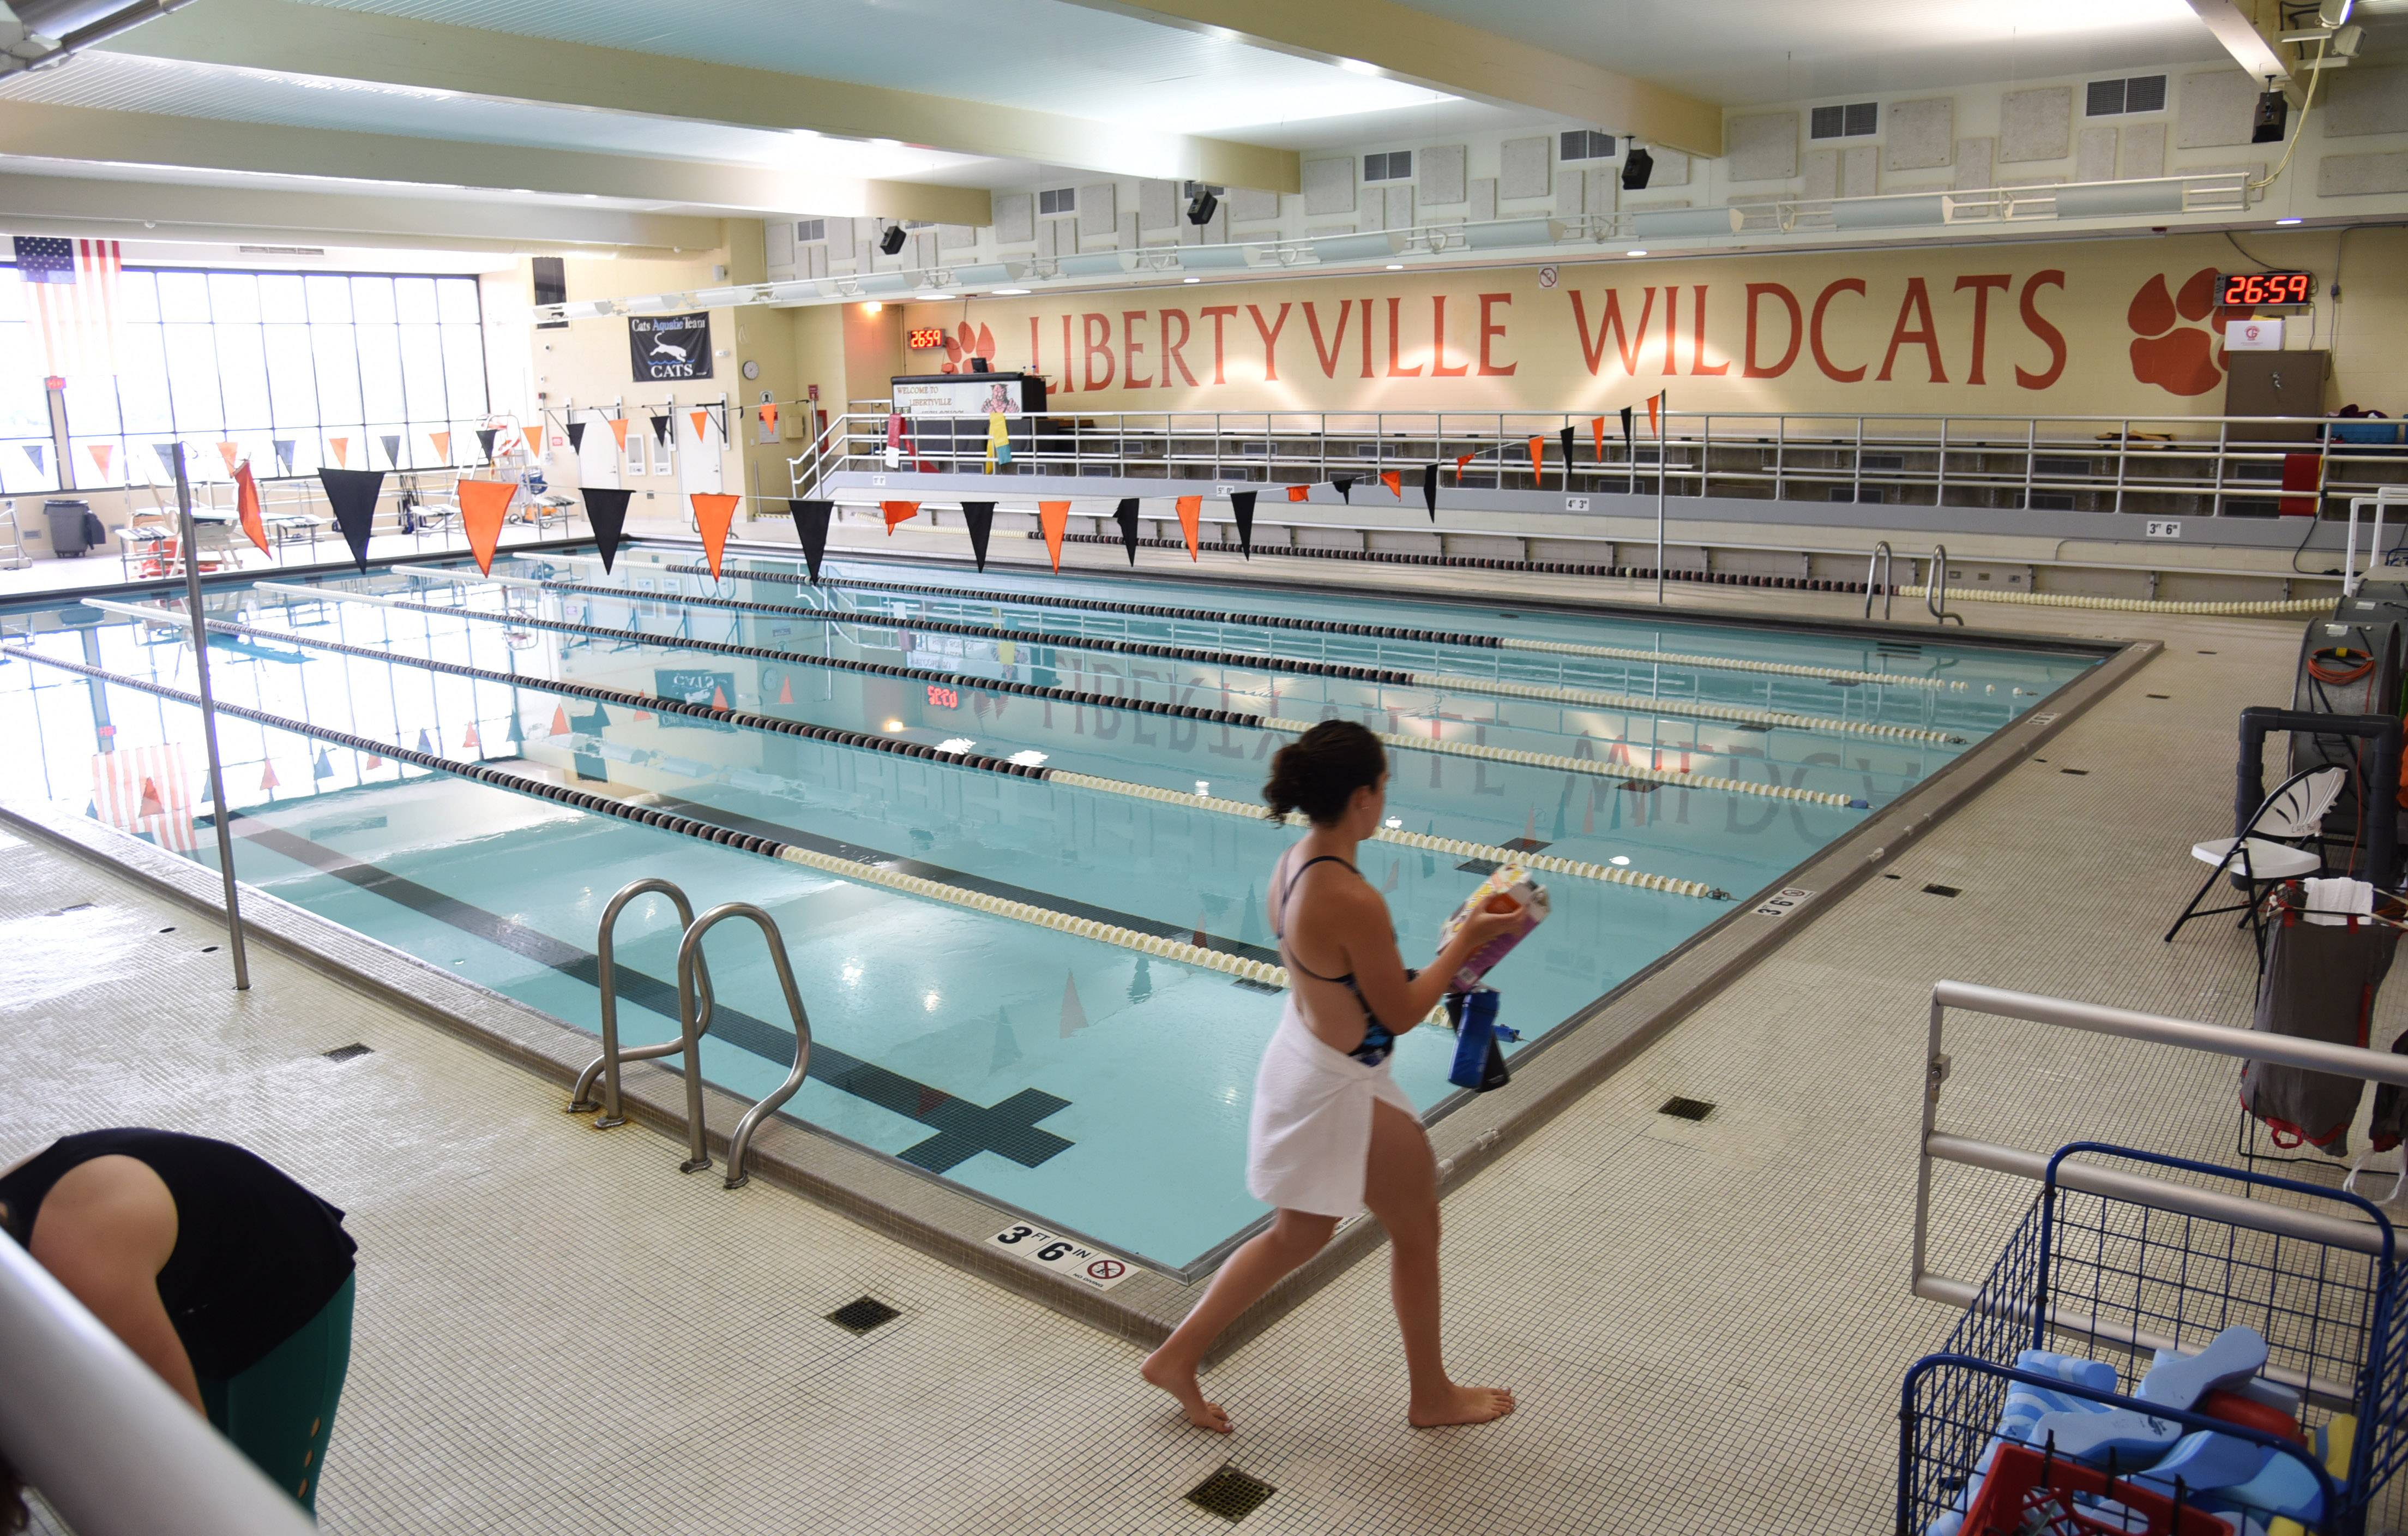 Officials have proposed converting Libertyville High School's swimming pool, shown here in 2017, into a different athletic space. A new pool is being constructed.